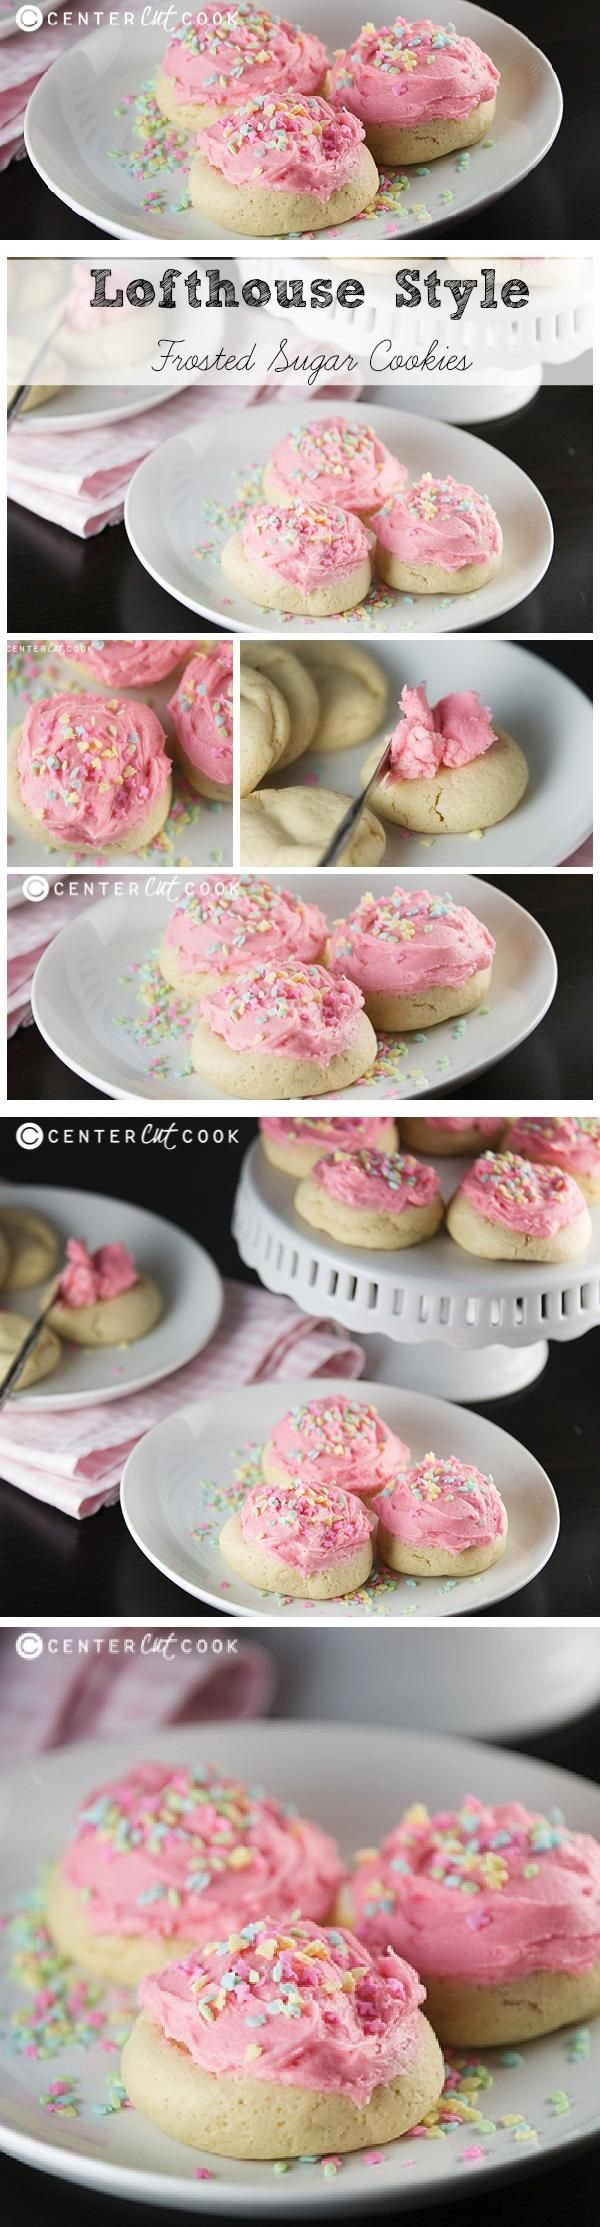 Lofthouse Soft Sugar Cookies {Copycat Recipe}